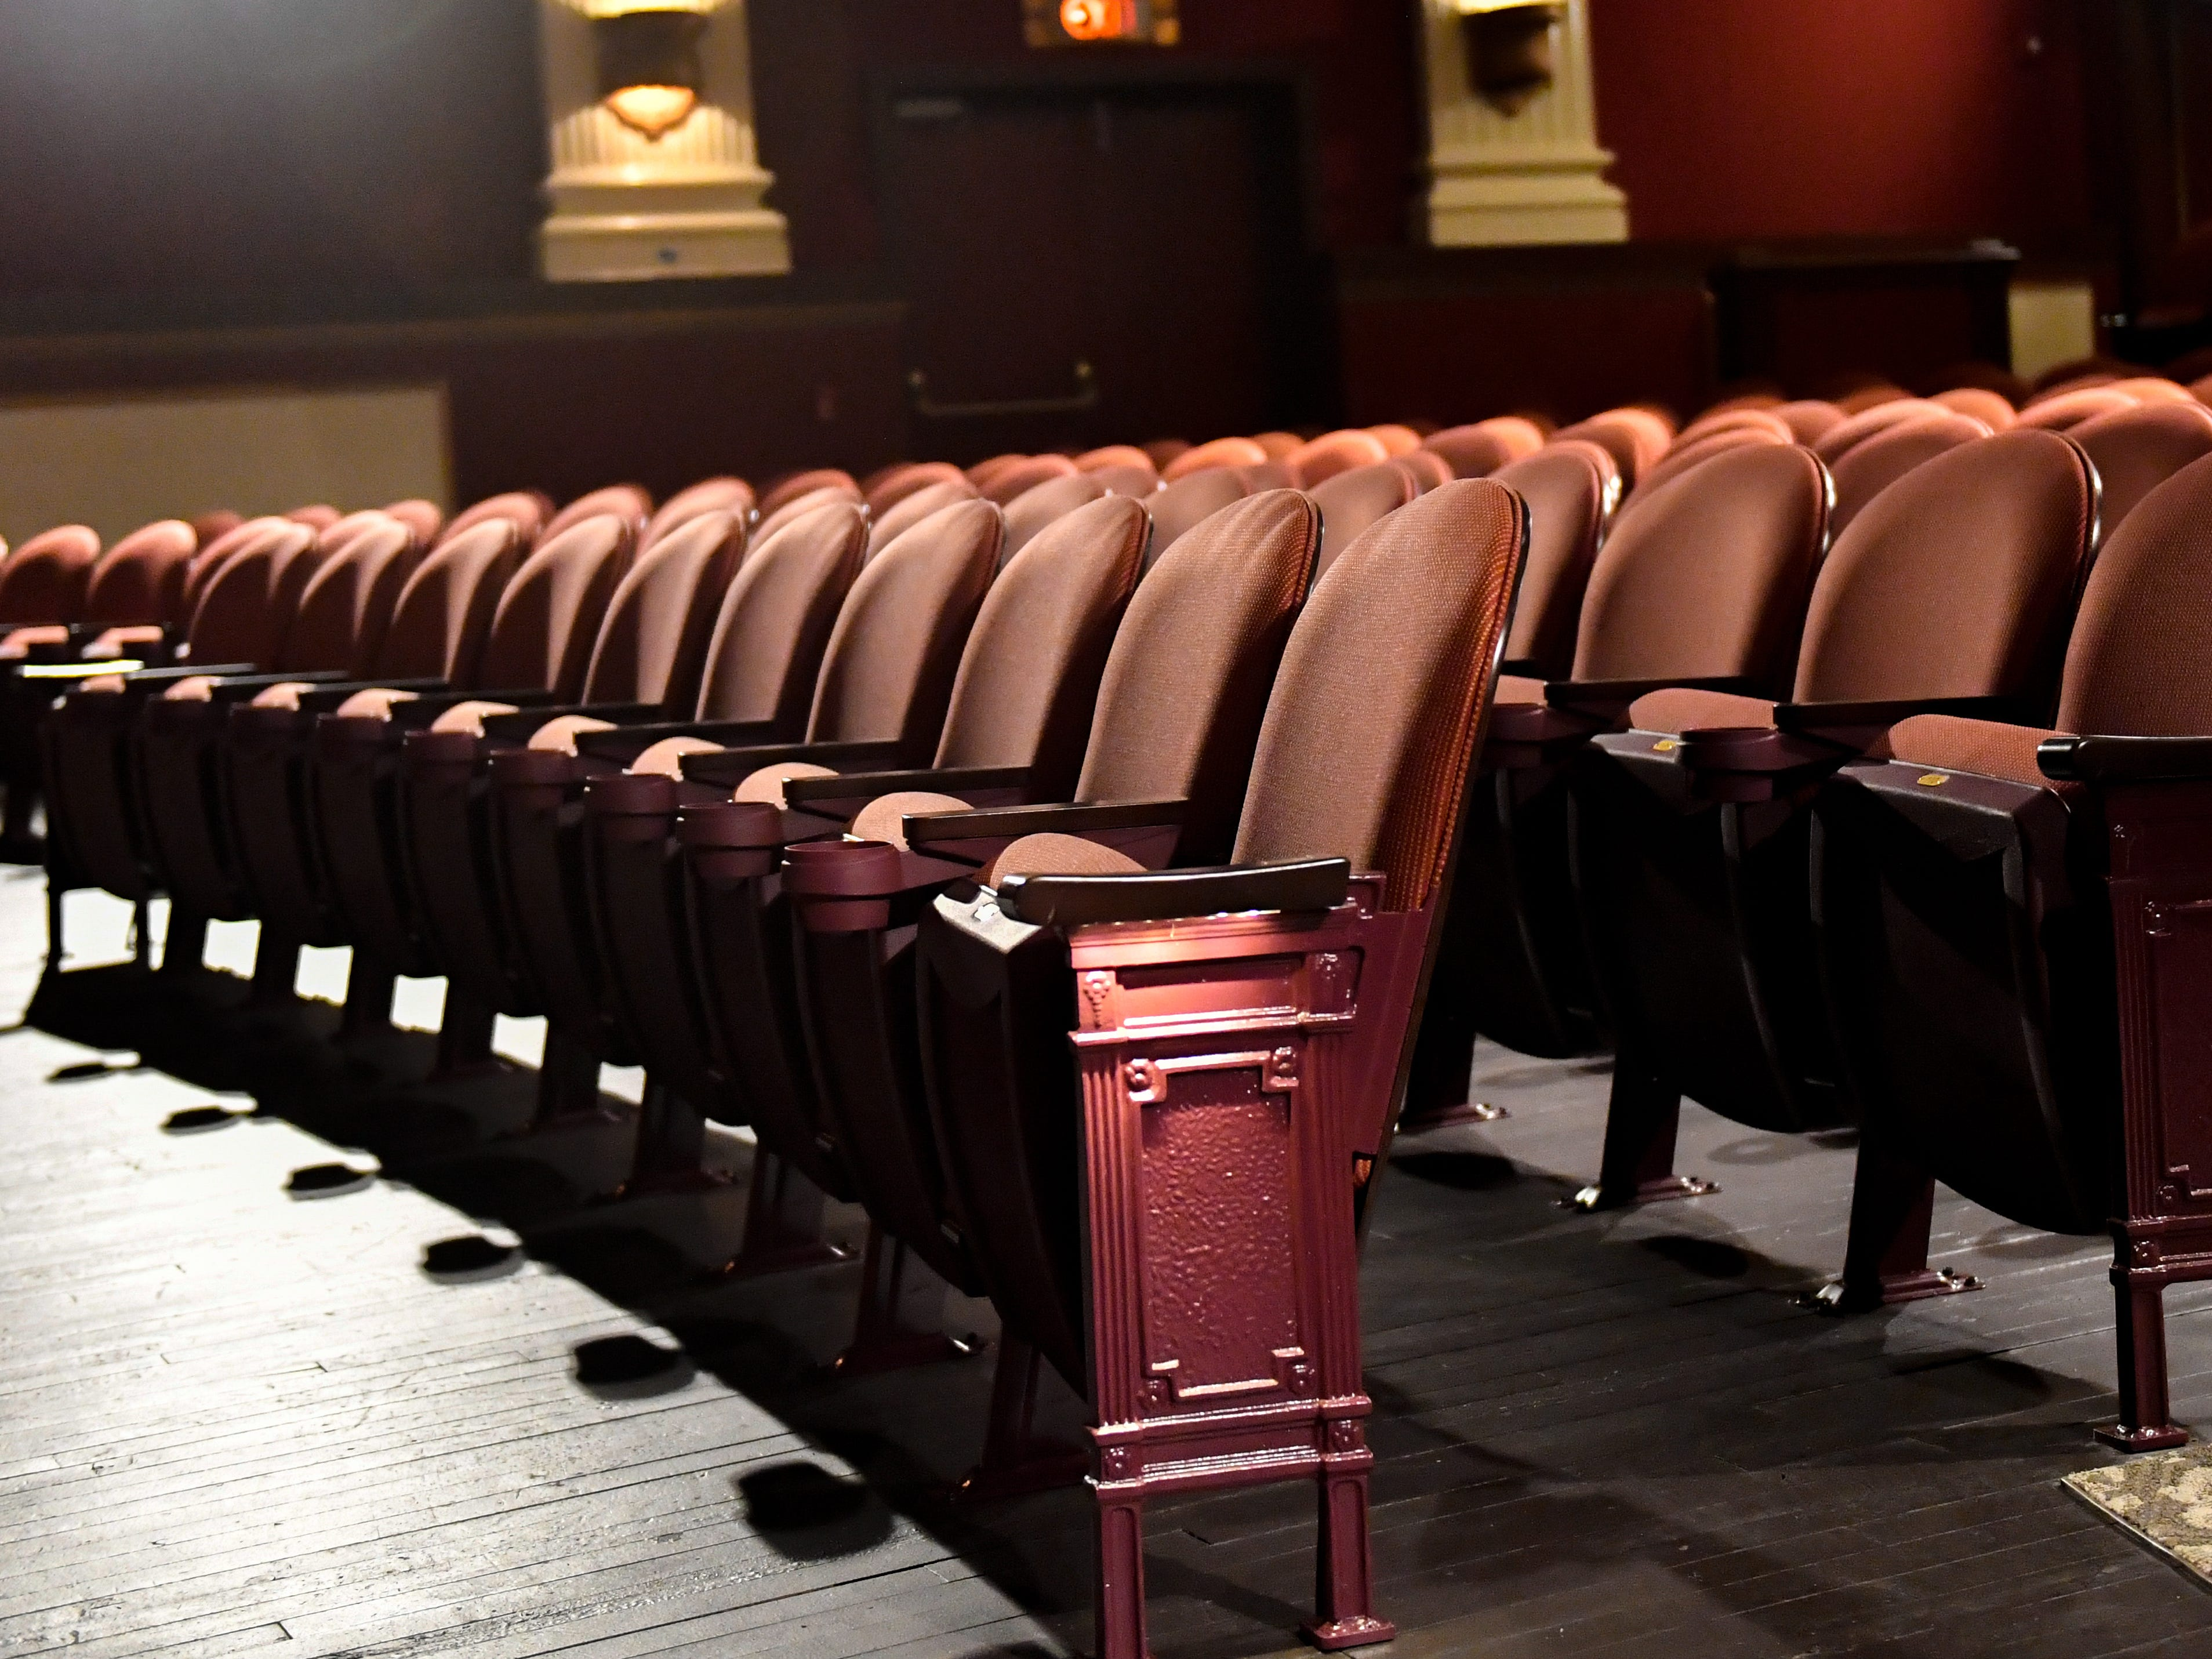 New seating is among the many things added in the renovations of the Capitol Theatre, October 5, 2018. The Theatre will hold 450-seats in total, with improved  sight-lines and additional arm and foot space between each chair.